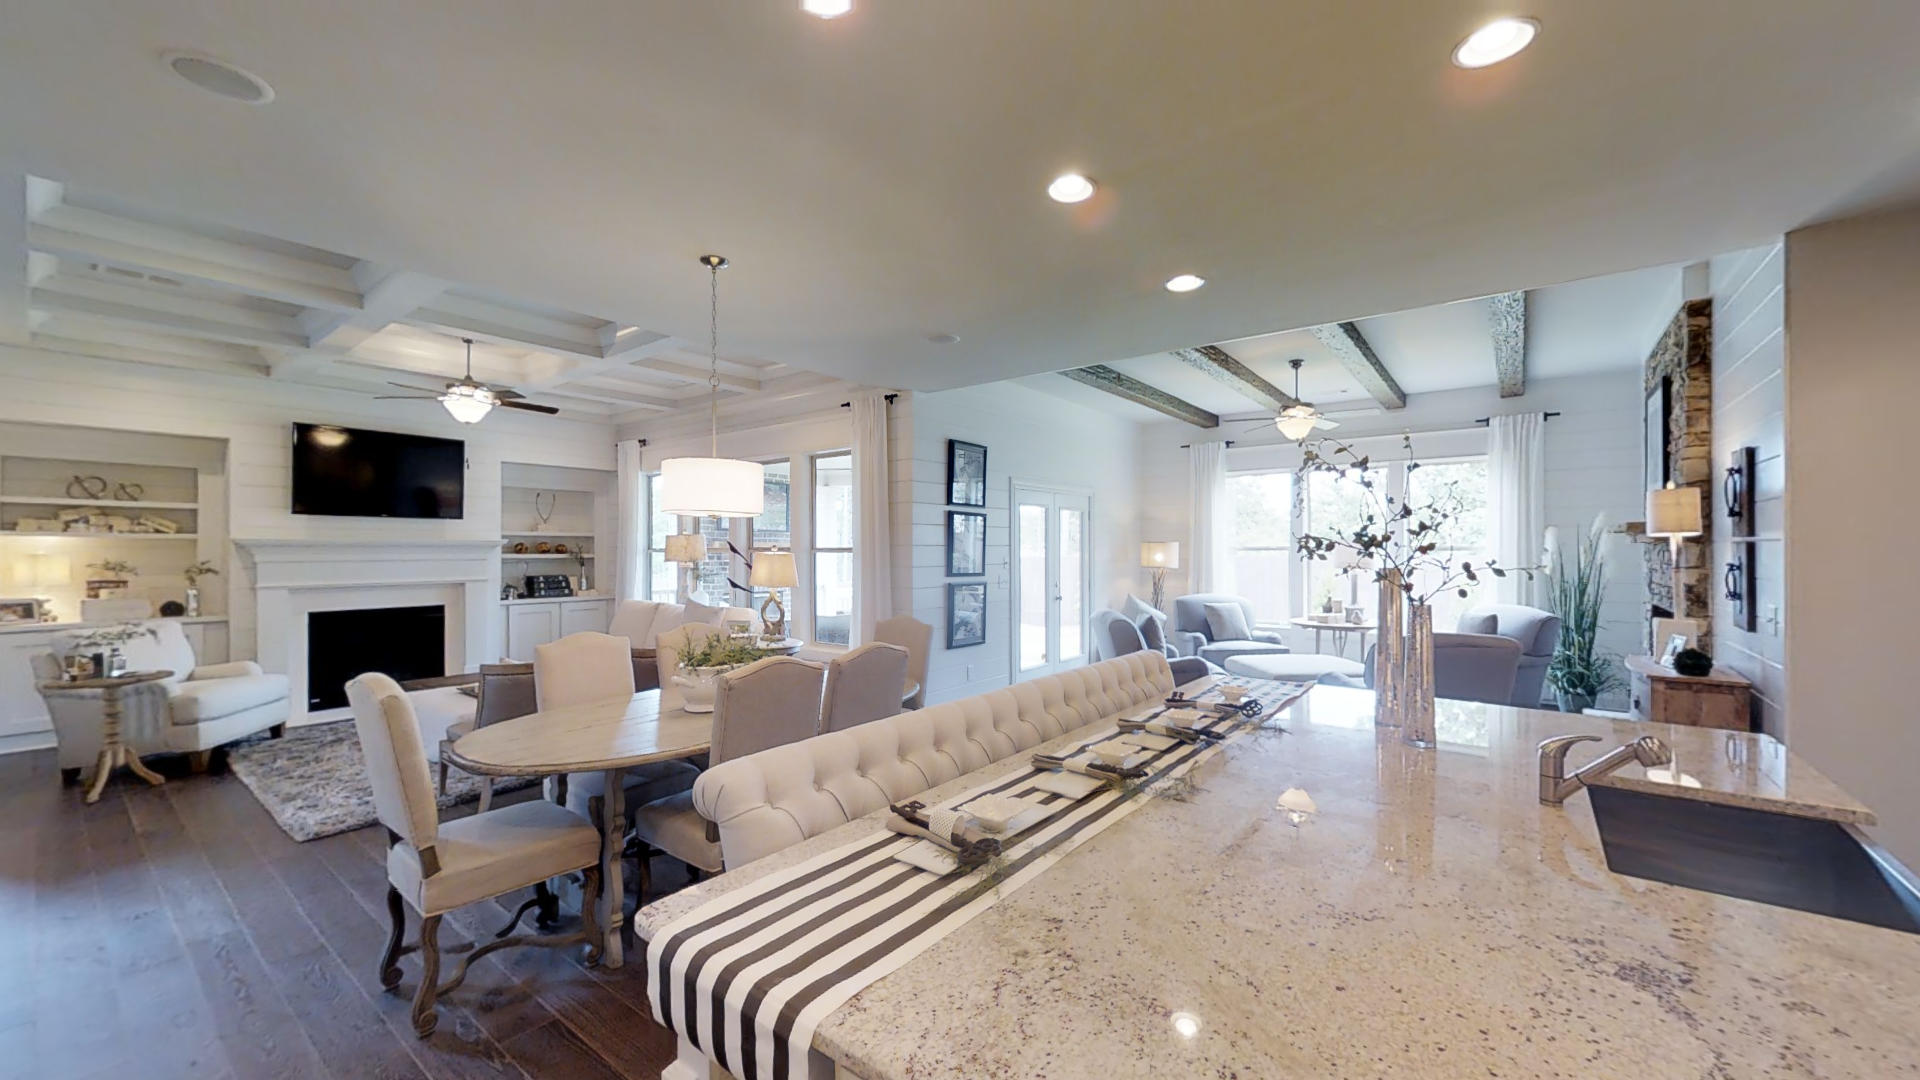 Home South Communities: Executive Style Homes in Suwanee